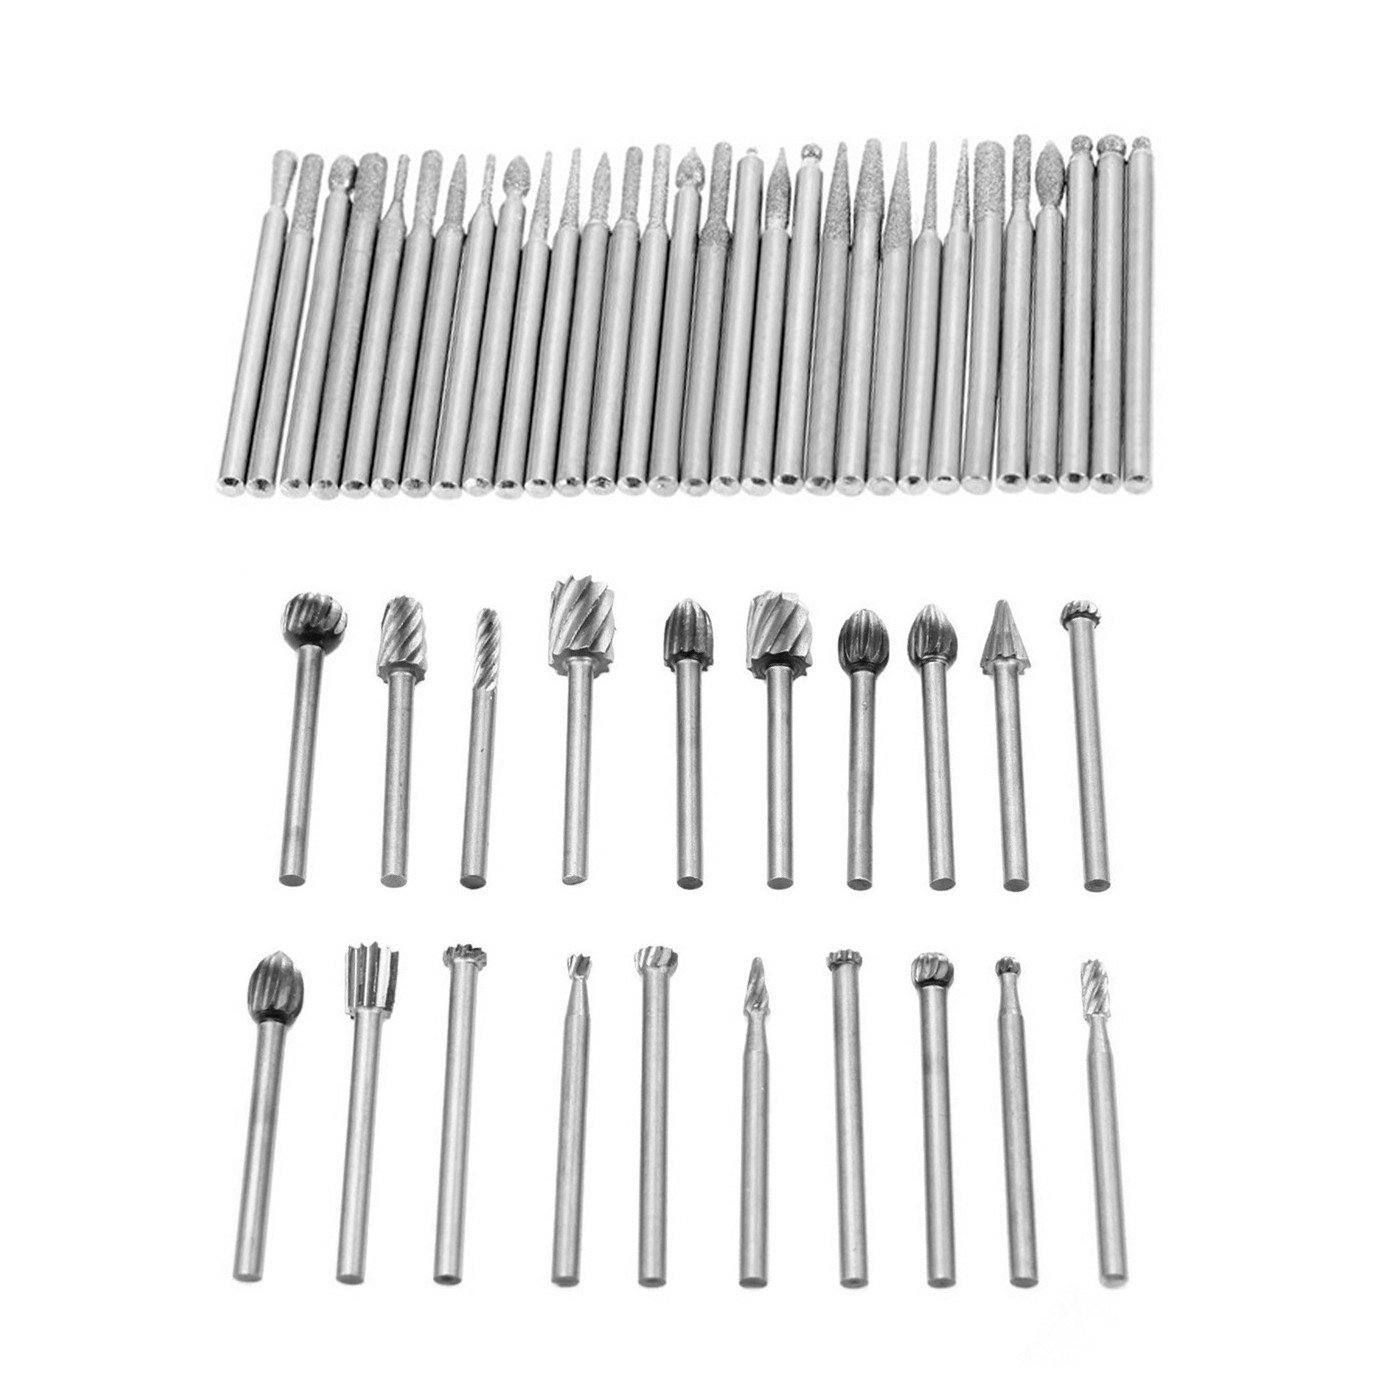 Set of 50 pcs micro (dremel) milling cutters/burrs  - 1